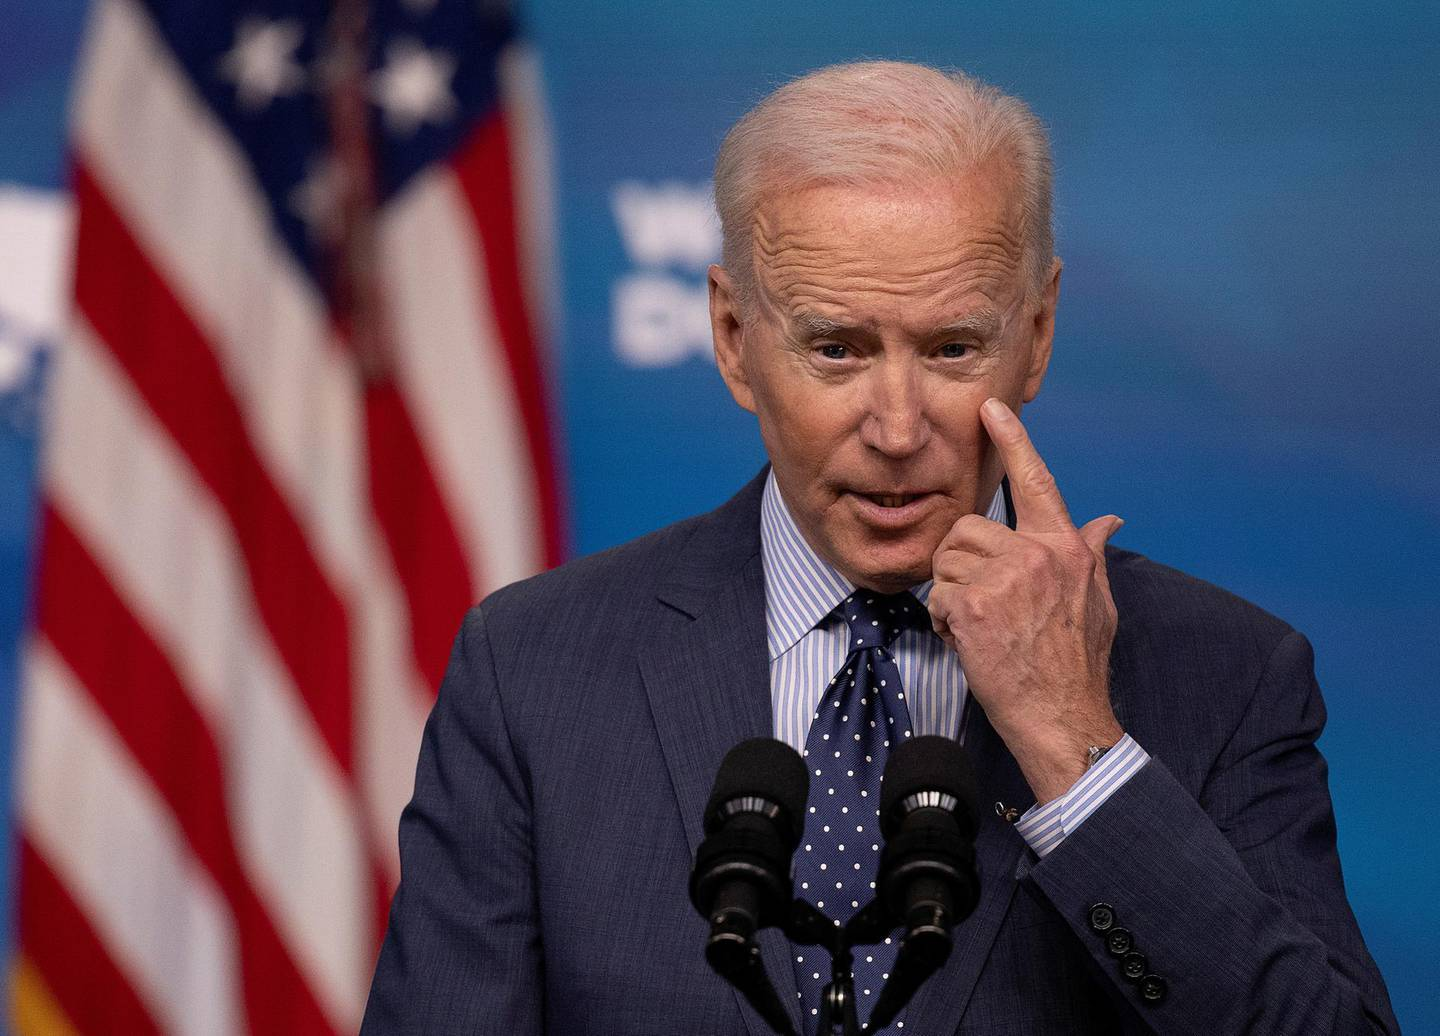 FILE PHOTO: U.S. President Joe Biden delivers remarks on the administration's coronavirus disease (COVID-19) response in the Eisenhower Executive Office Building's South Court Auditorium at the White House in Washington, U.S., June 2, 2021. REUTERS/Carlos Barria/File Photo